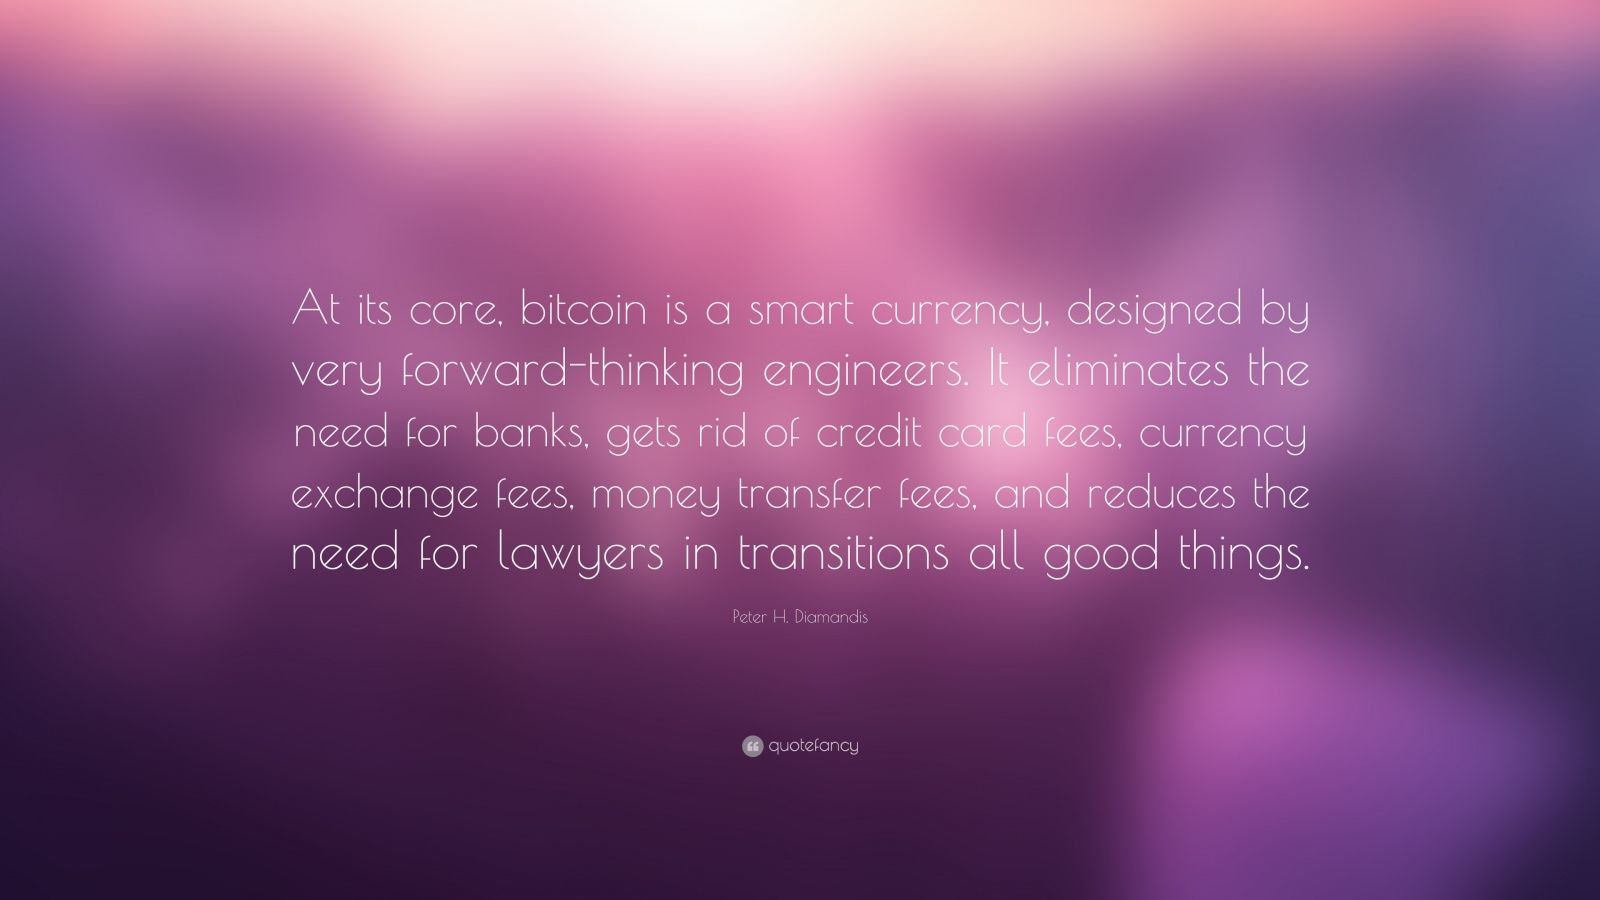 "Peter H. Diamandis Quote: ""At its core, bitcoin is a smart currency, designed by very forward-thinking engineers. It eliminates the need for banks, gets rid of credit card fees, currency exchange fees, money transfer fees, and reduces the need for lawyers in transitions all good things."""